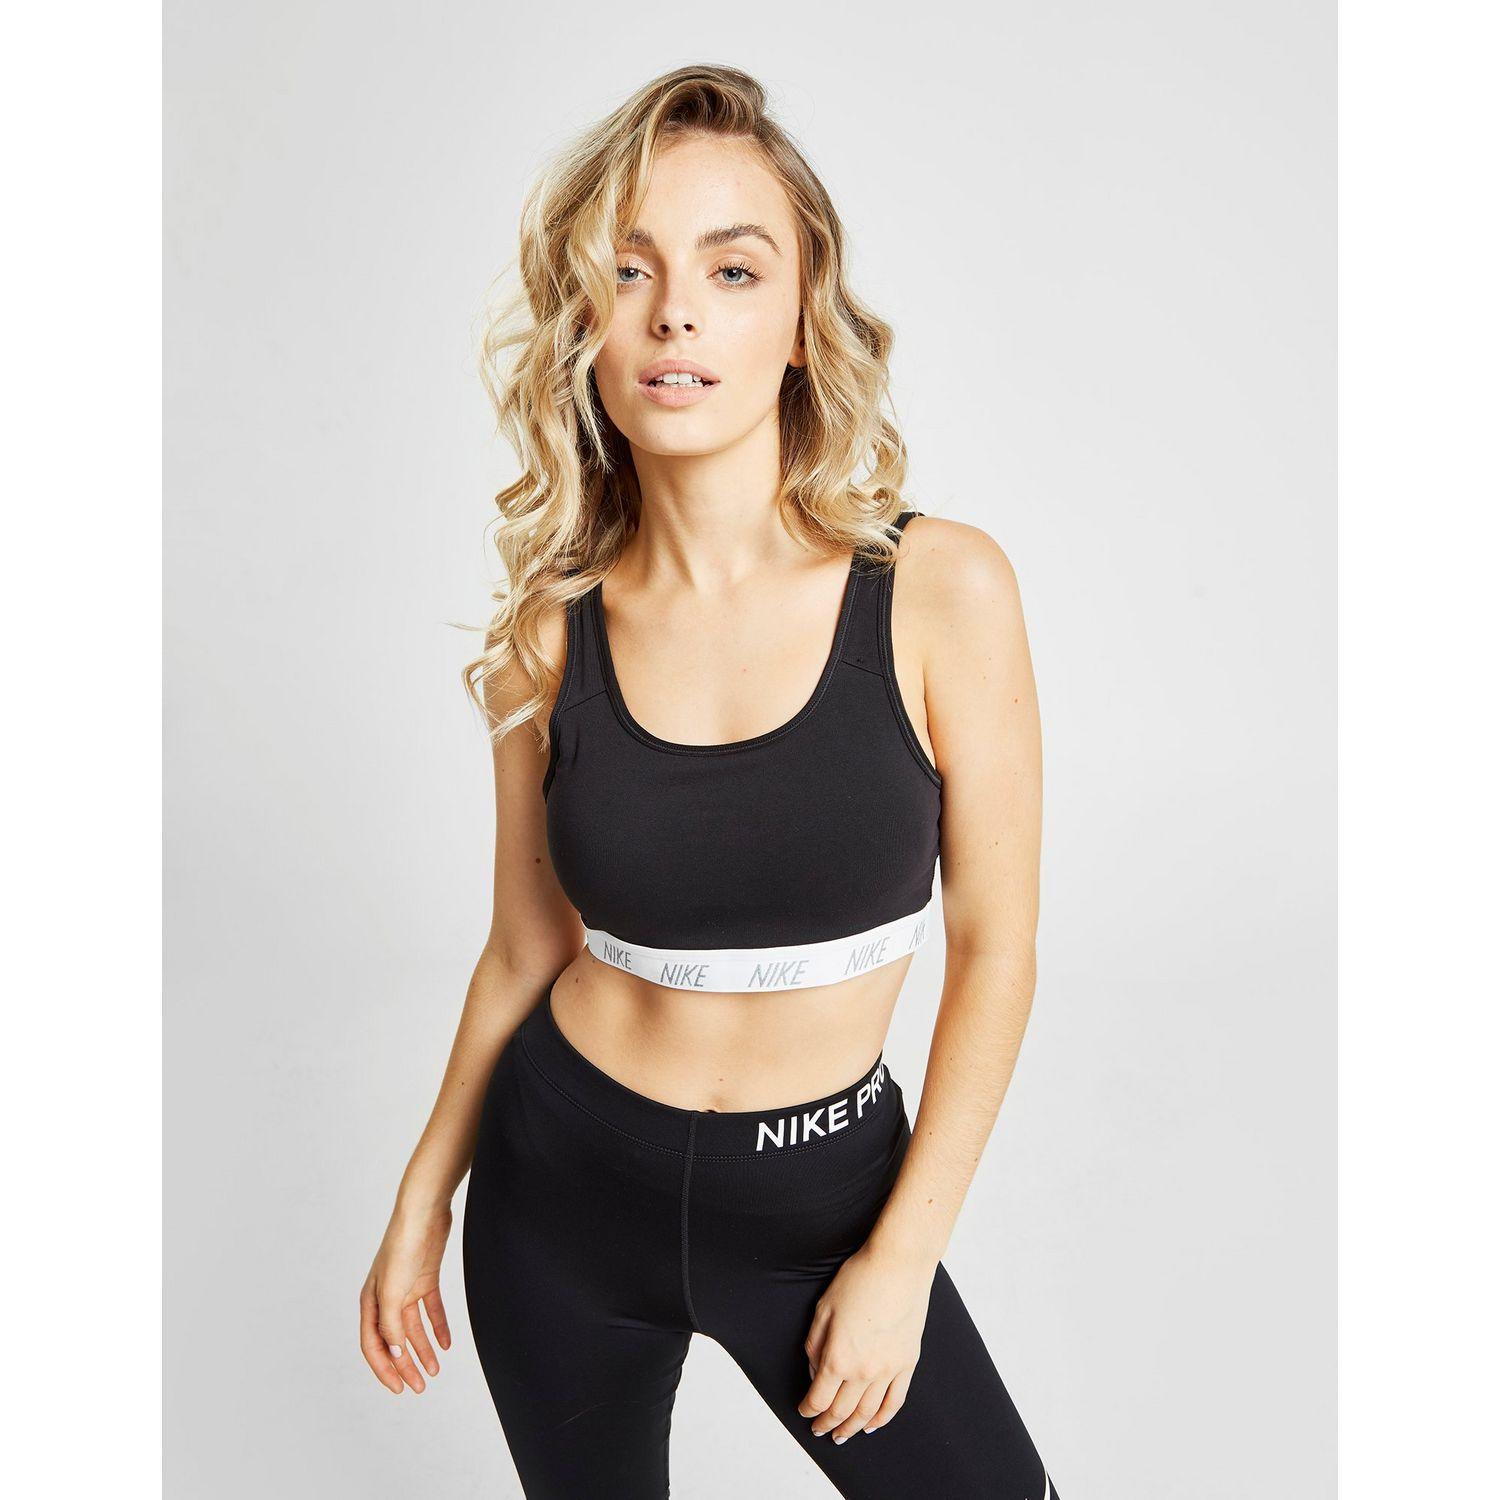 ca6b2103e1 Lyst - Nike Classic Soft Medium-support Sports Bra in Black